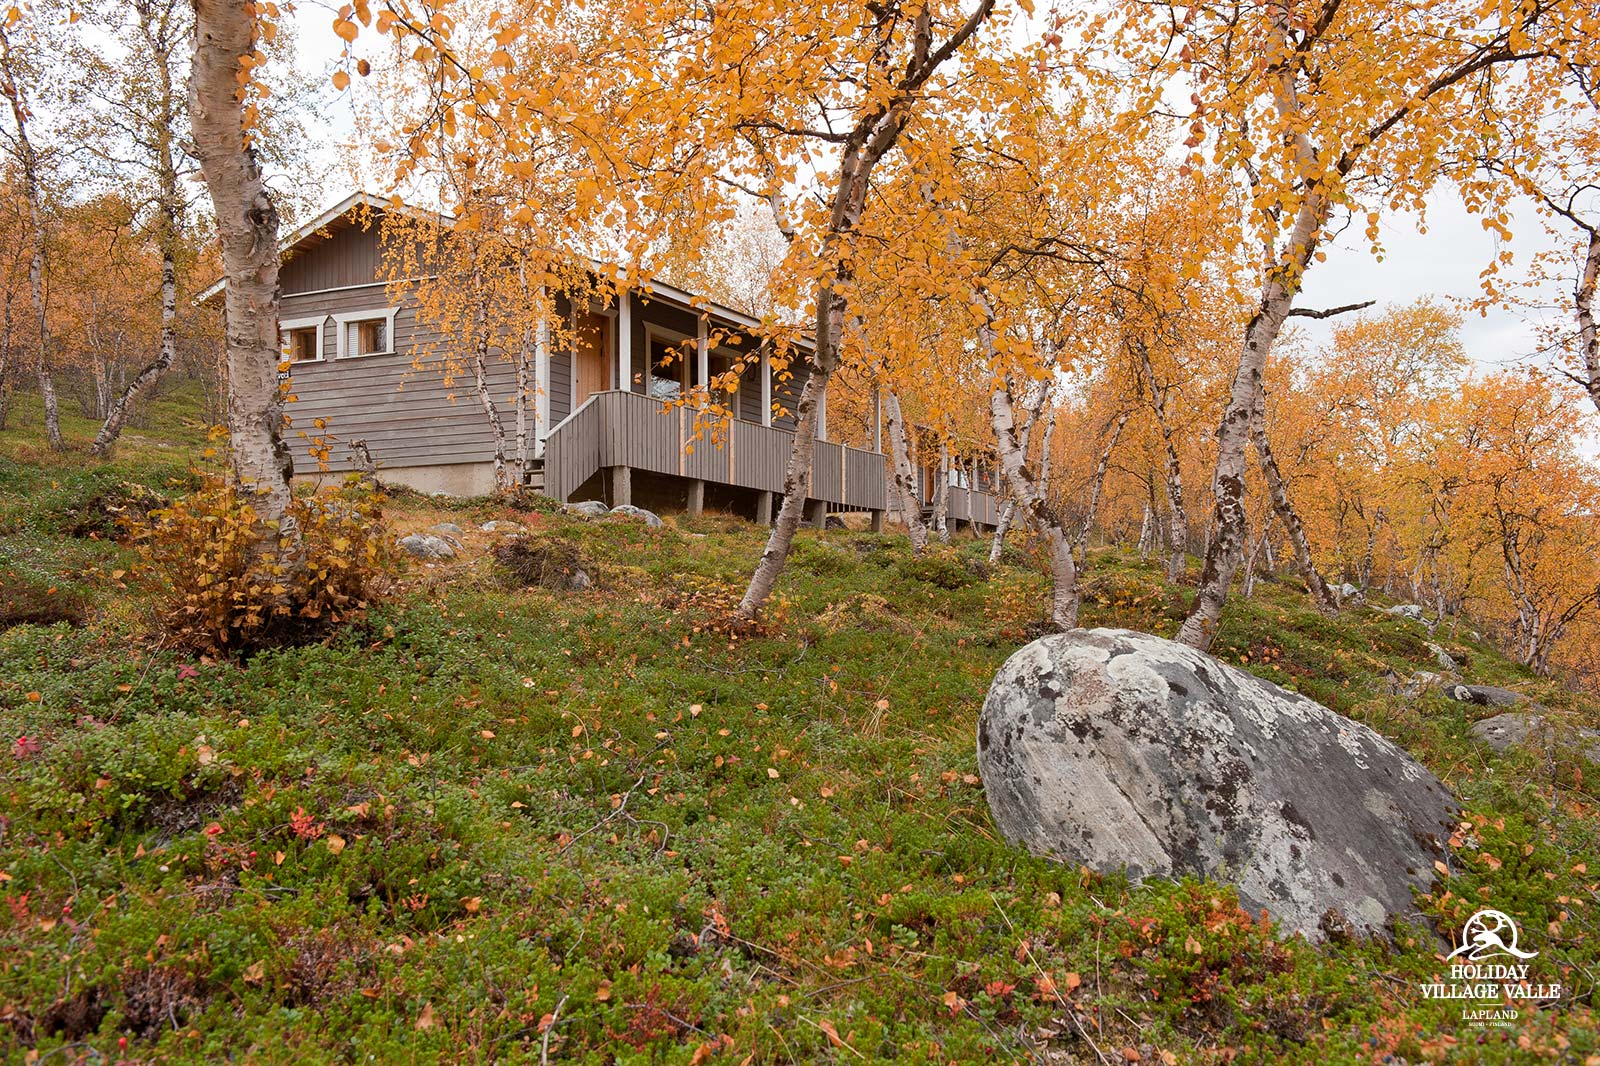 gallery-cabin-holiday-village-valle-lapland-1